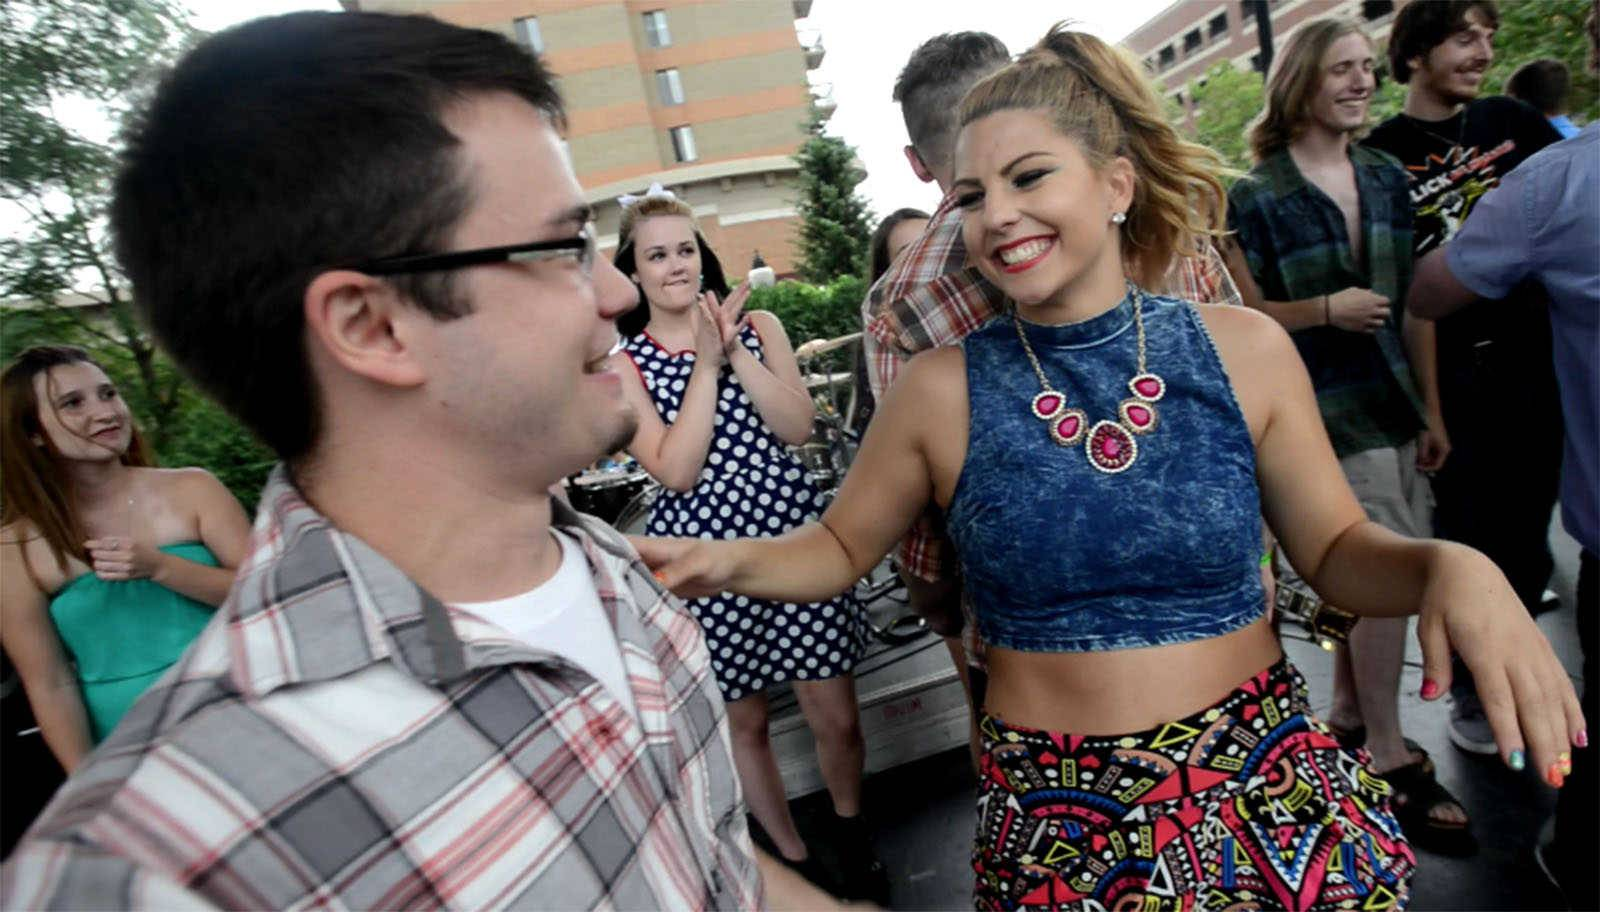 Laura Burke, right, formerly of Arlington Heights, was a competition co-winner with Ryan Cooper of Schaumburg for the 2015 summer season of Suburban Chicago's Got Talent.